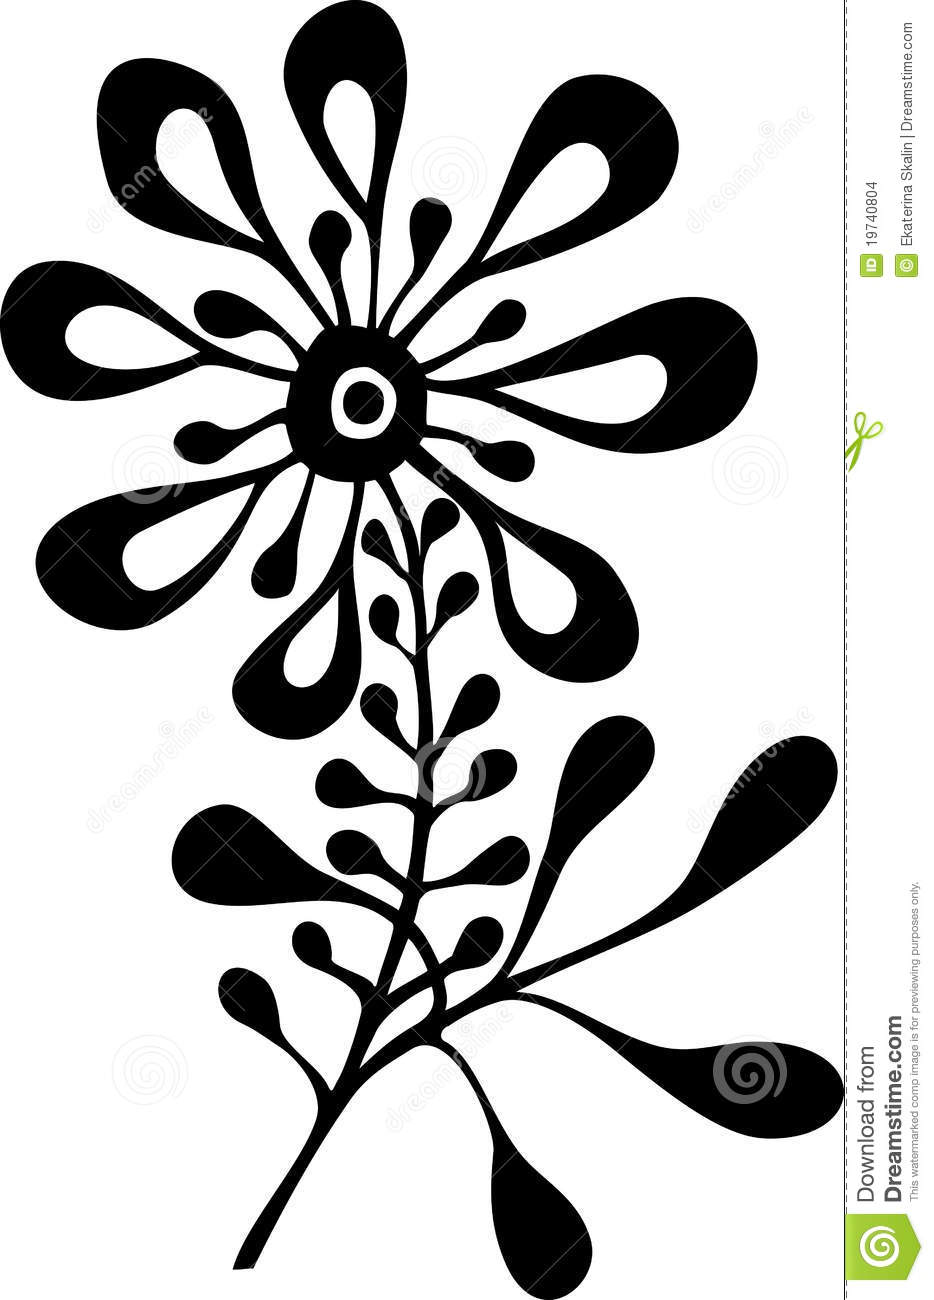 Black and White Flower Vector